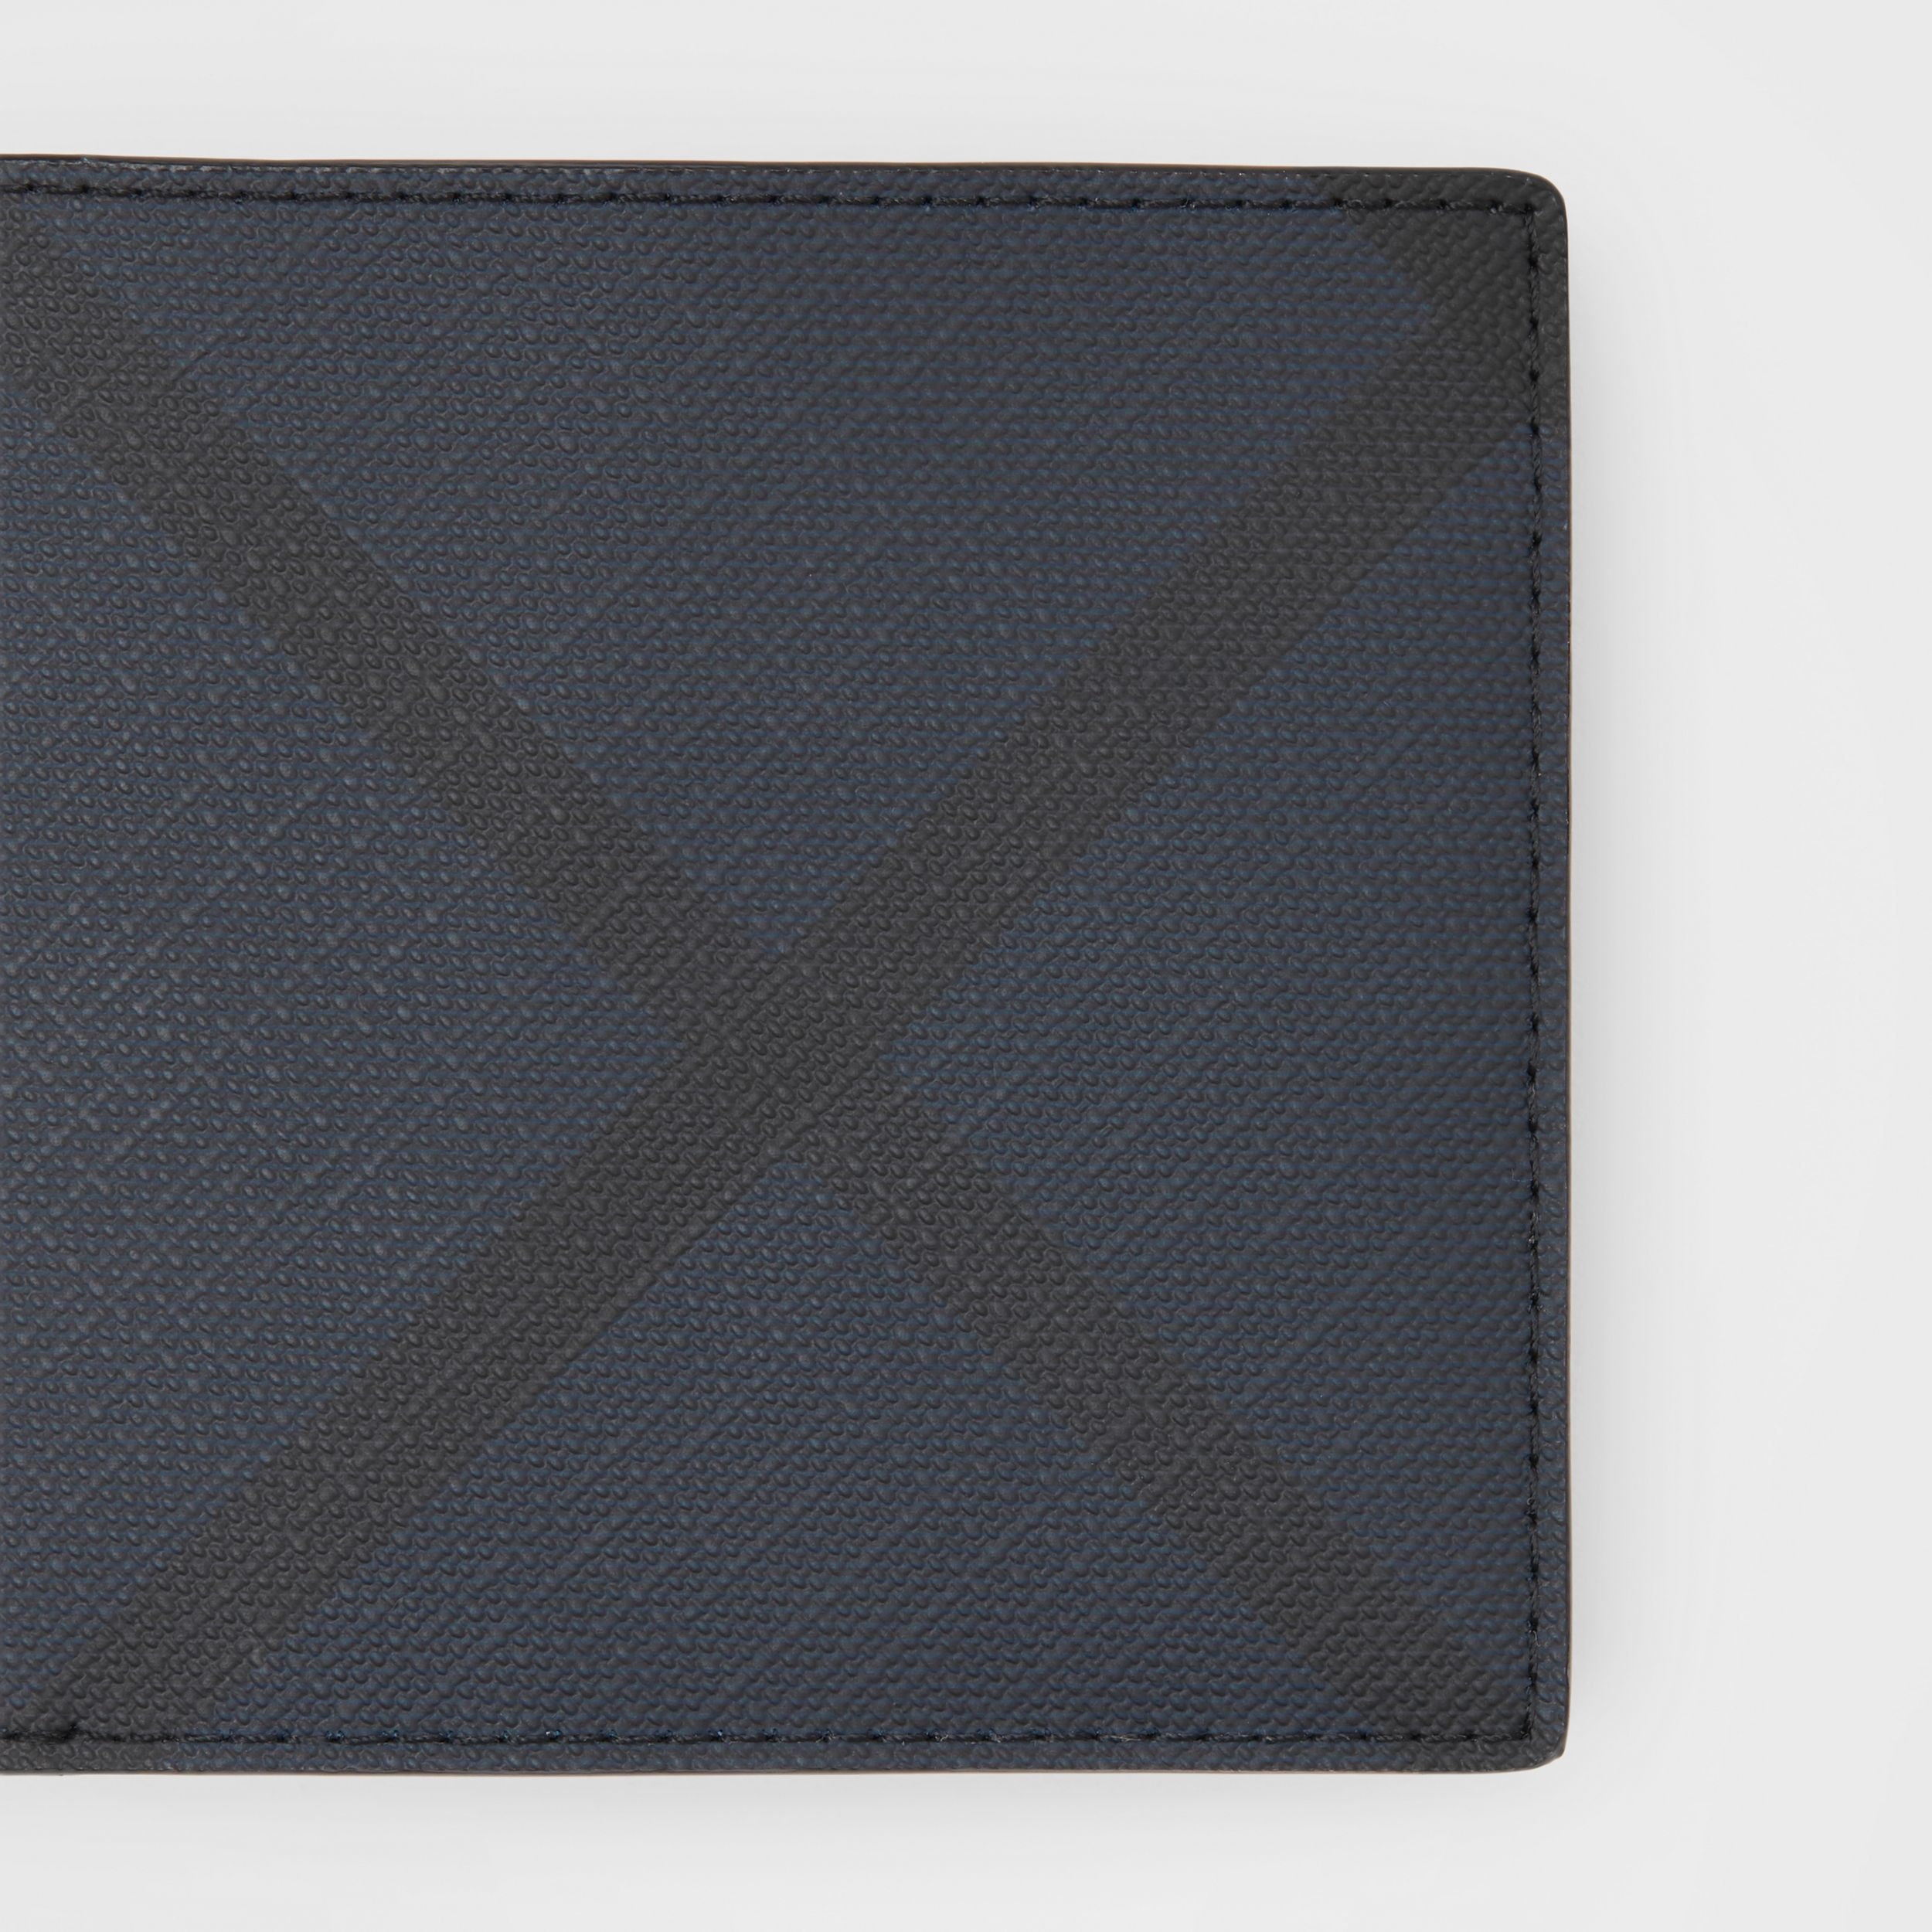 London Check and Leather International Bifold Wallet in Navy - Men | Burberry - 2